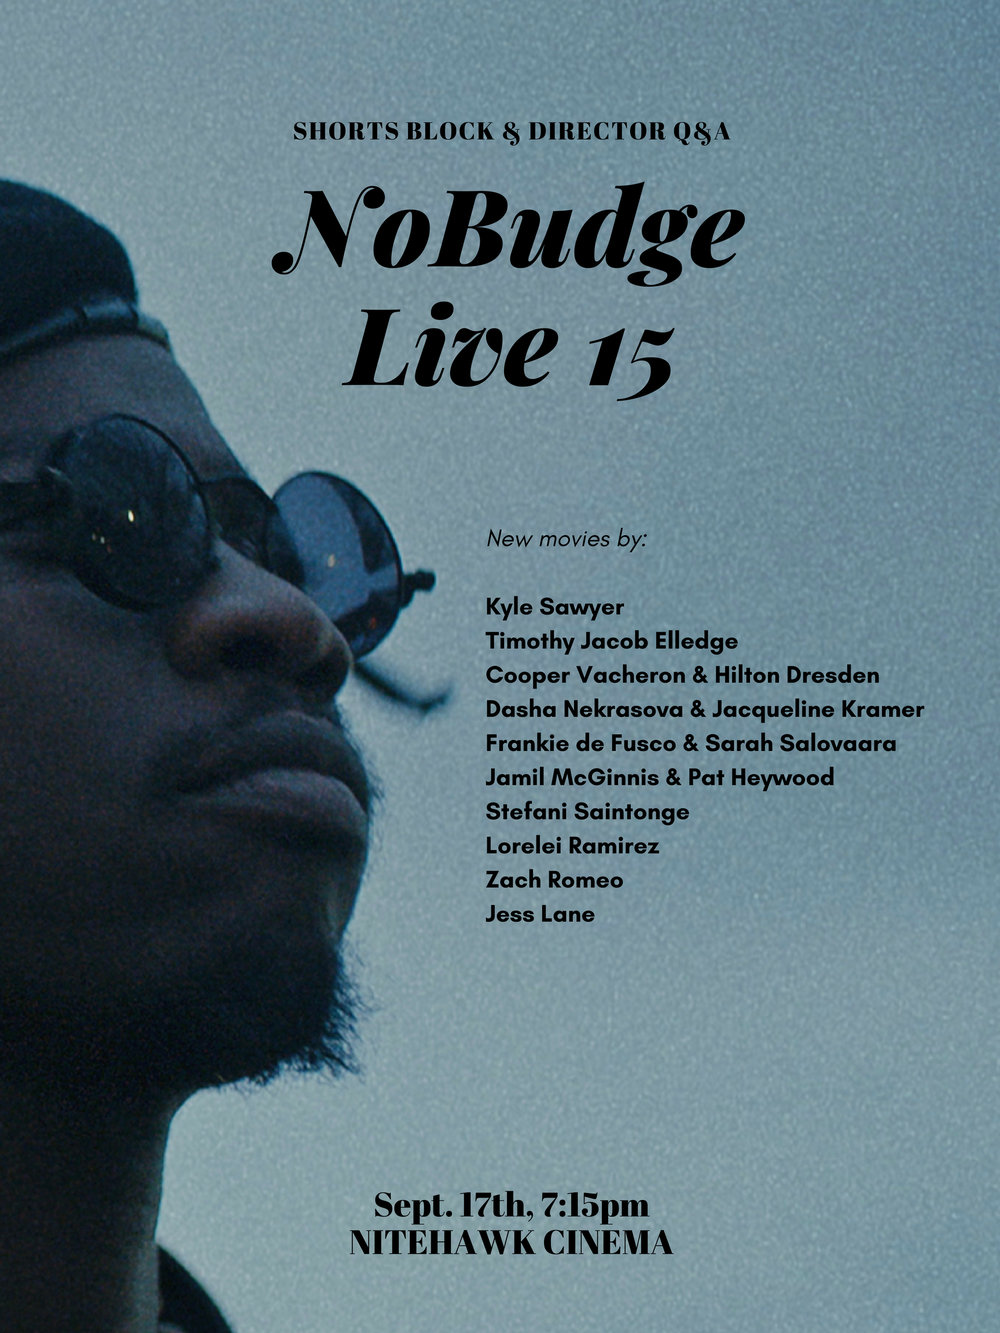 NoBudge Live 15 Poster (corrected).jpg